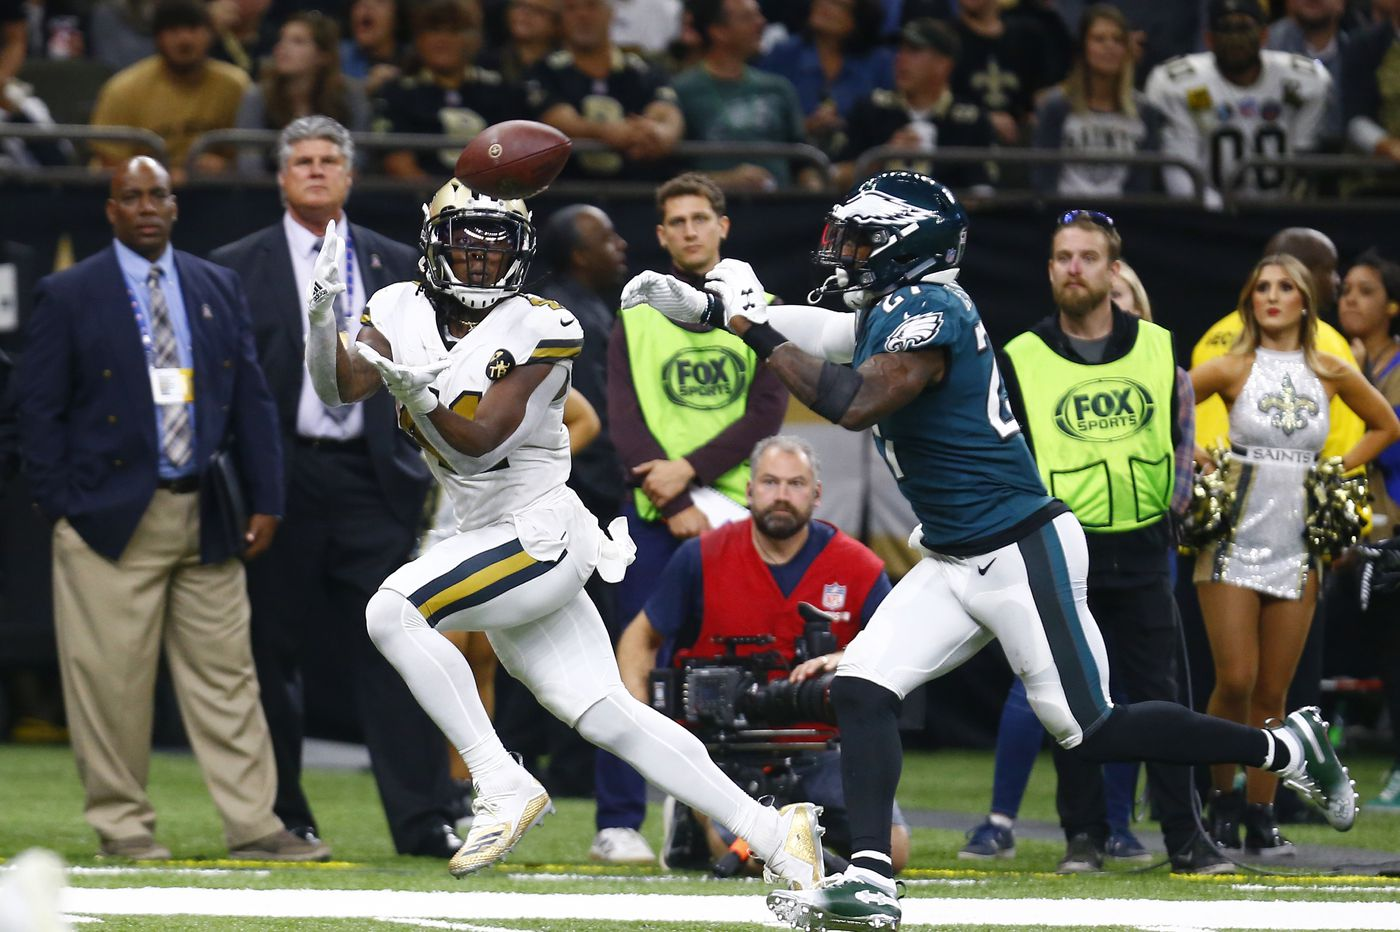 Eagles open as 8.5-point underdogs to Saints in NFL playoff divisional matchup